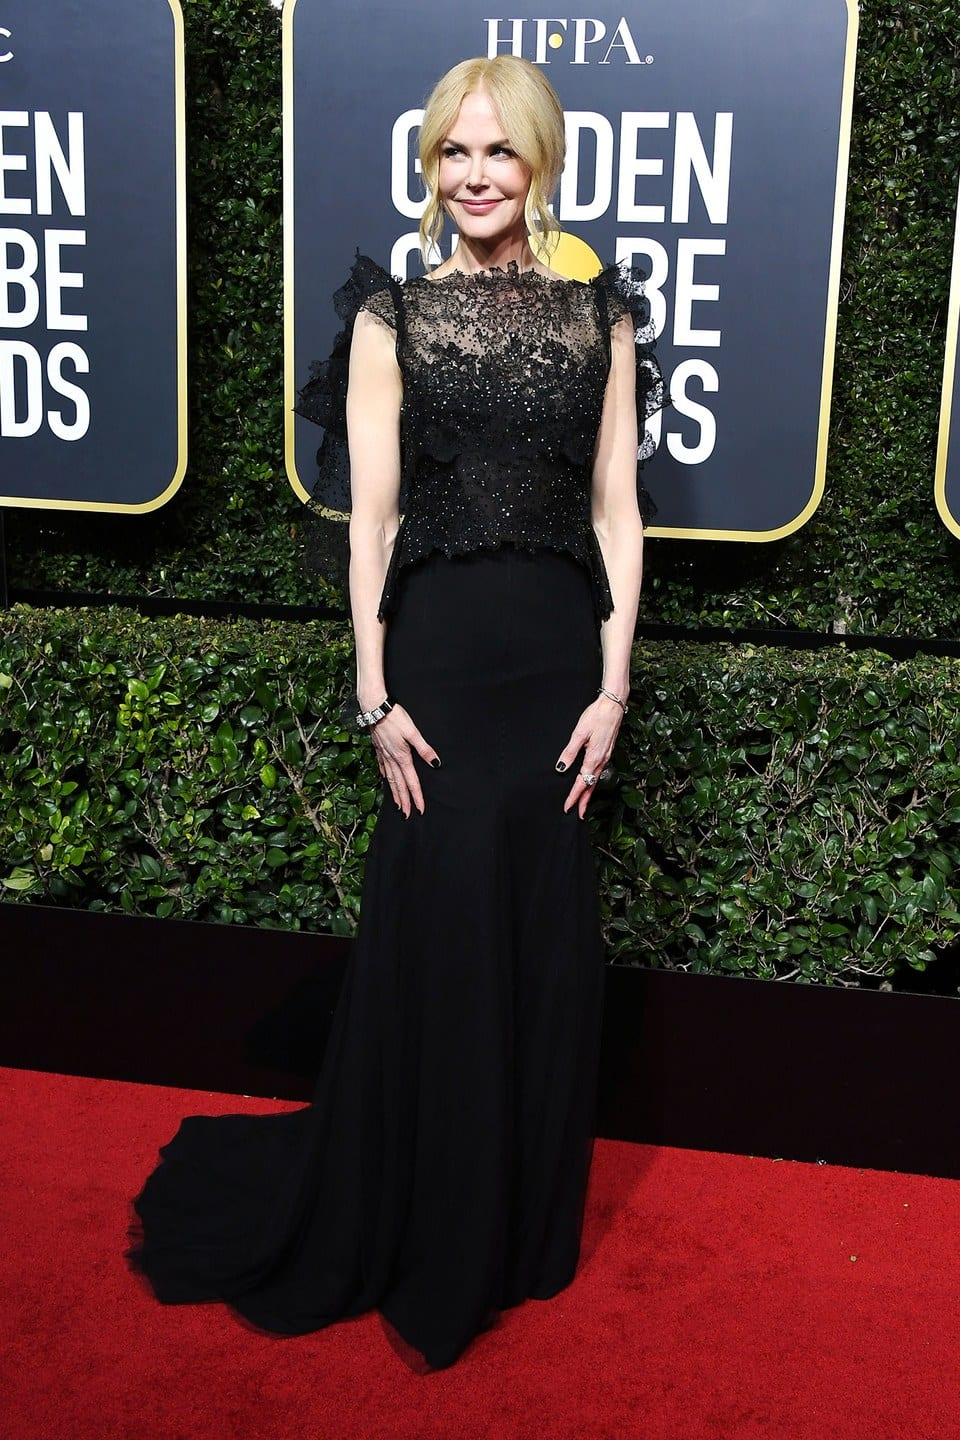 golden globes best dressed, golden globes 2018, Nicole Kidman, big little lies